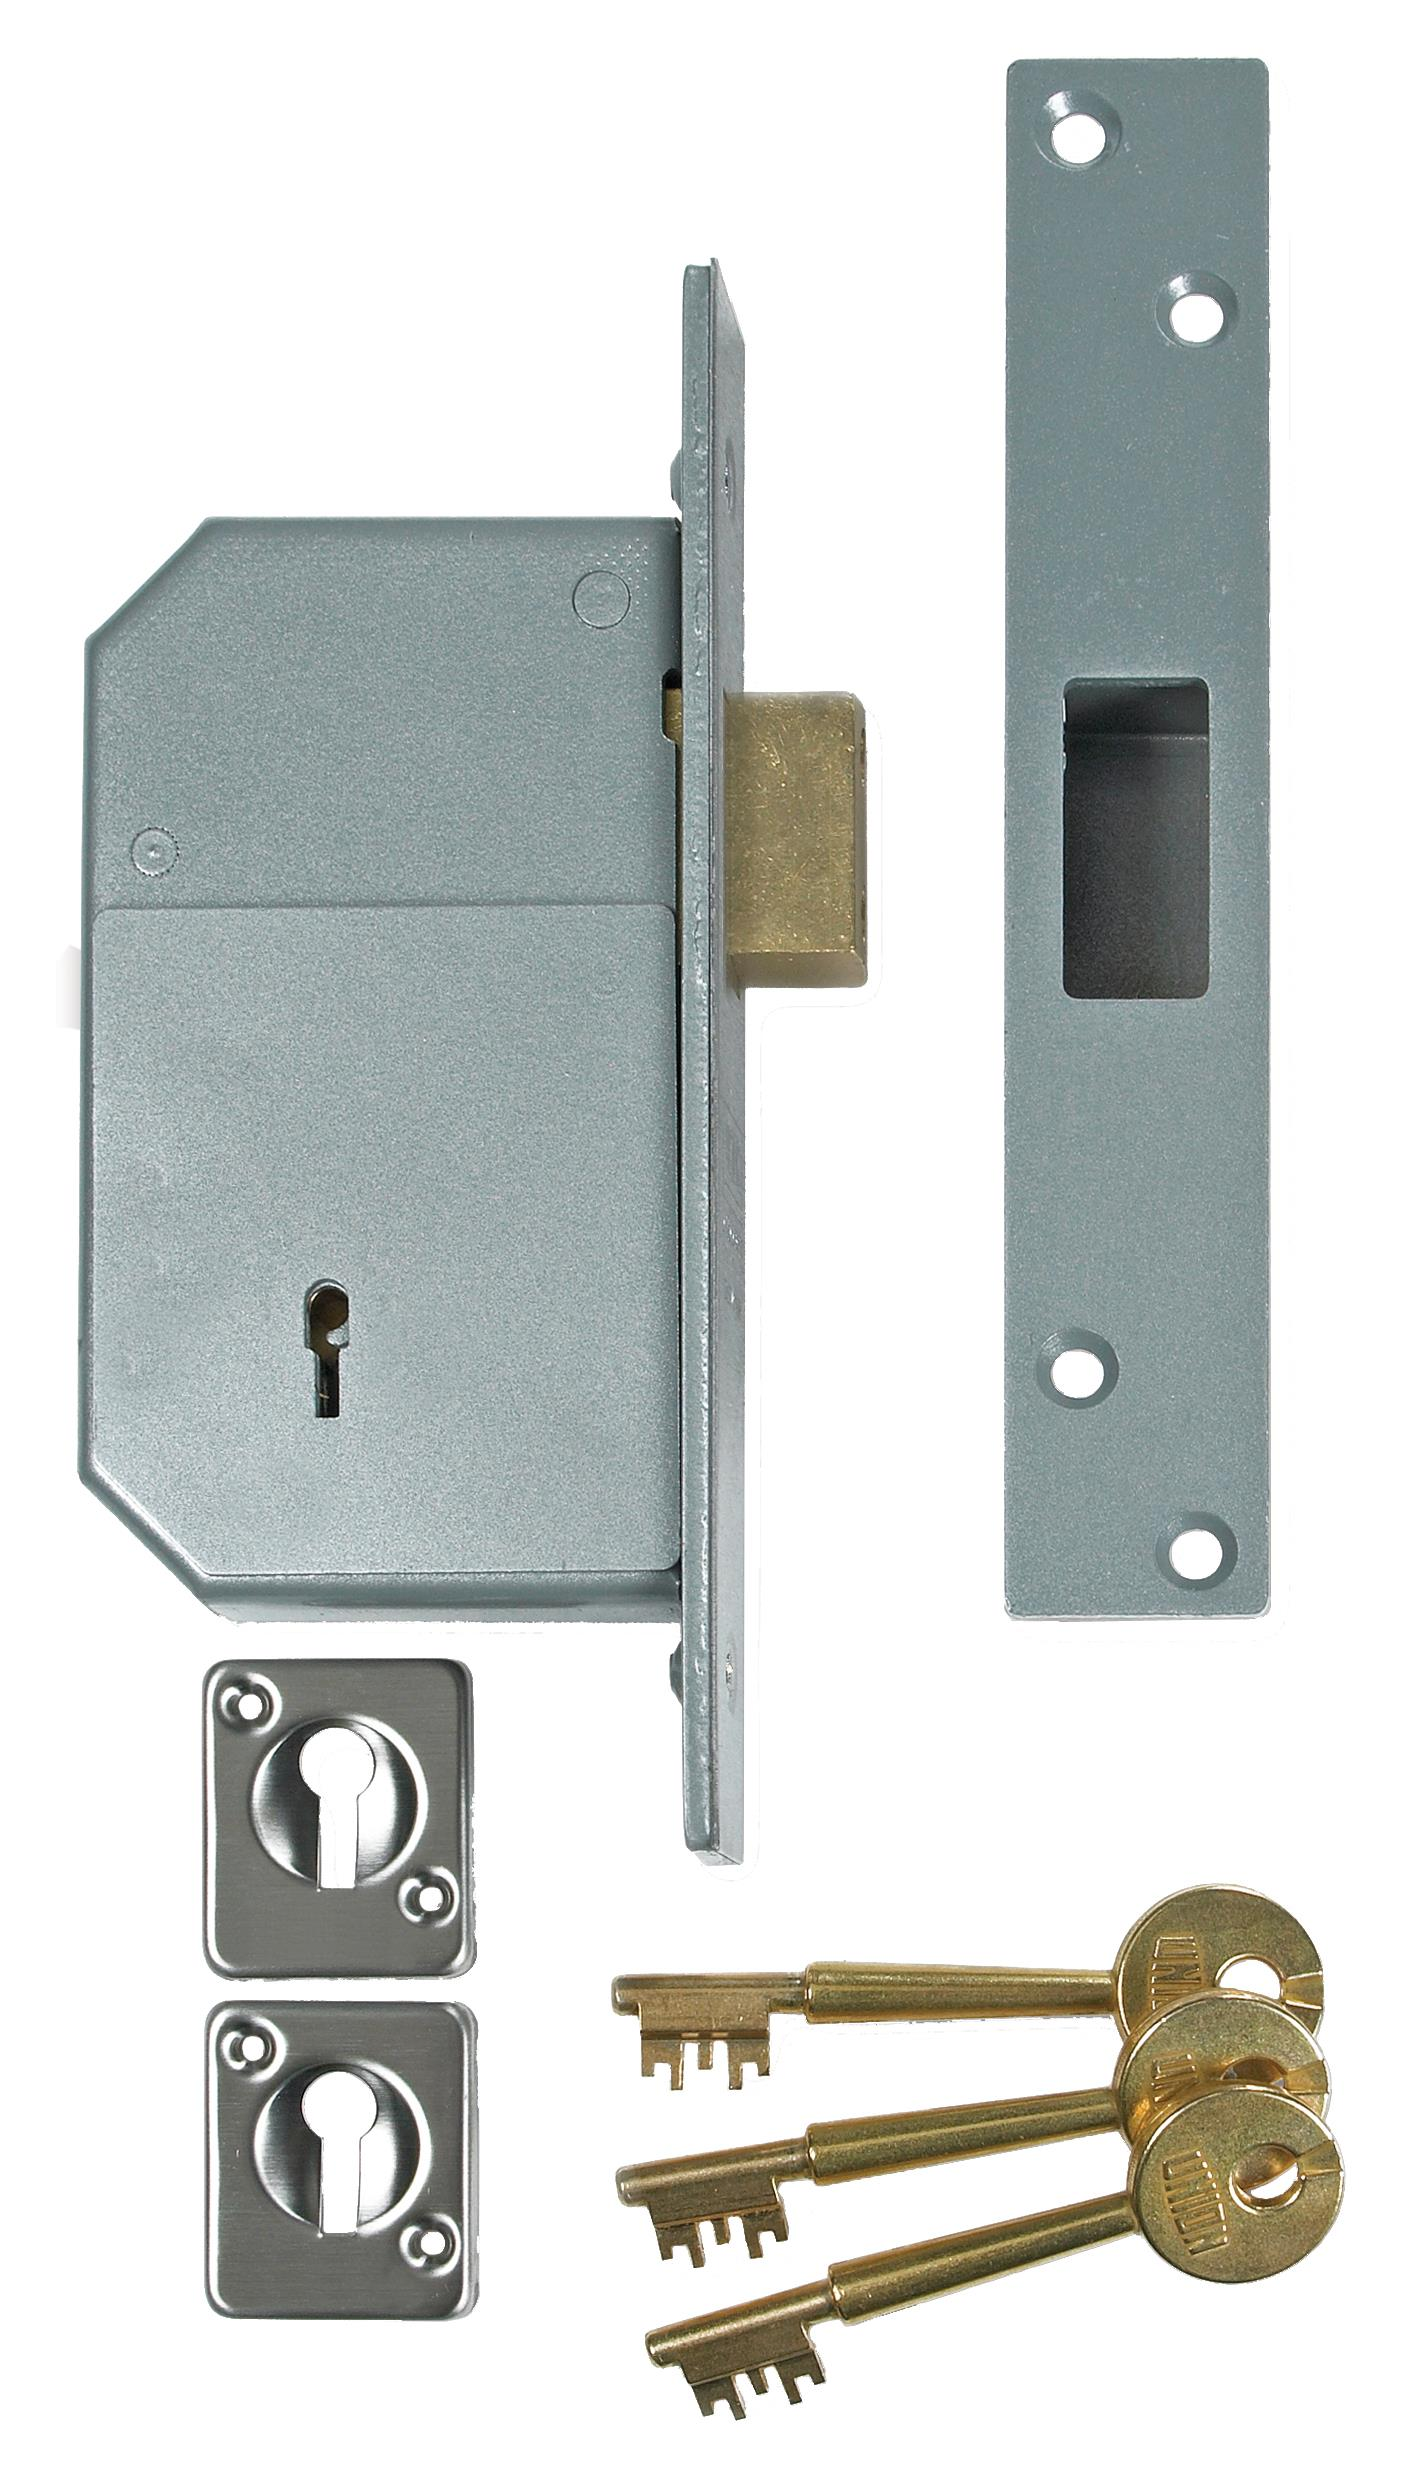 3G135 - 5 Detainer Mortice Deadlock 'Fortress'